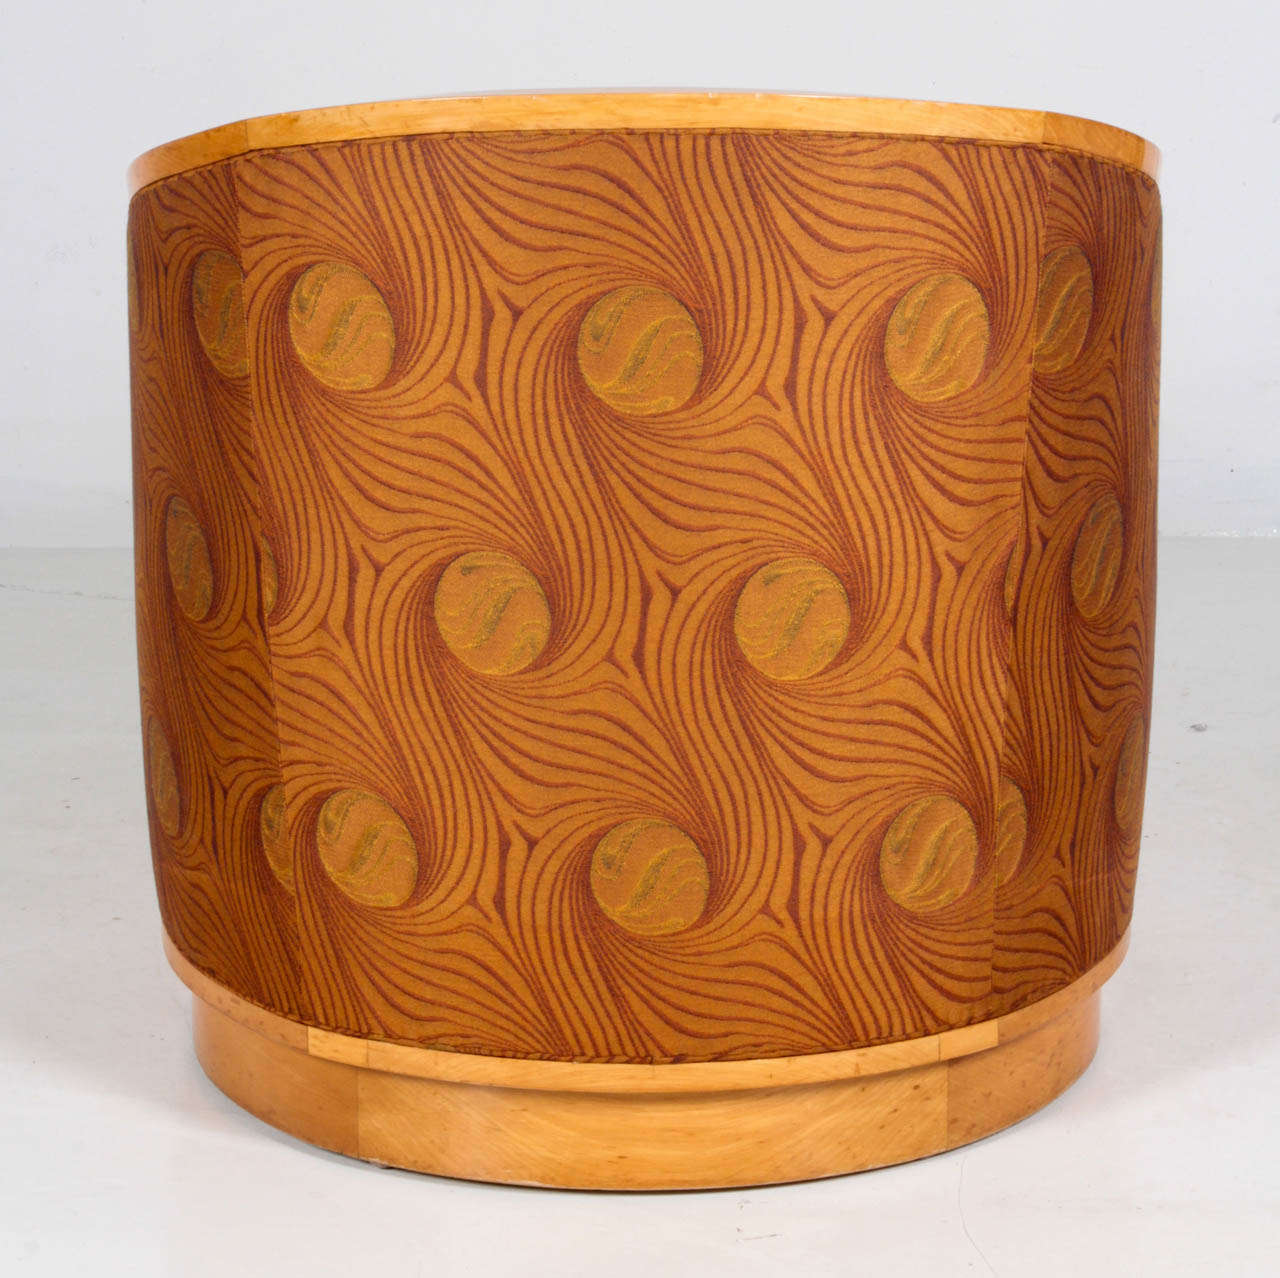 D i m decoration int rieure moderne french art deco for Deco interieure moderne